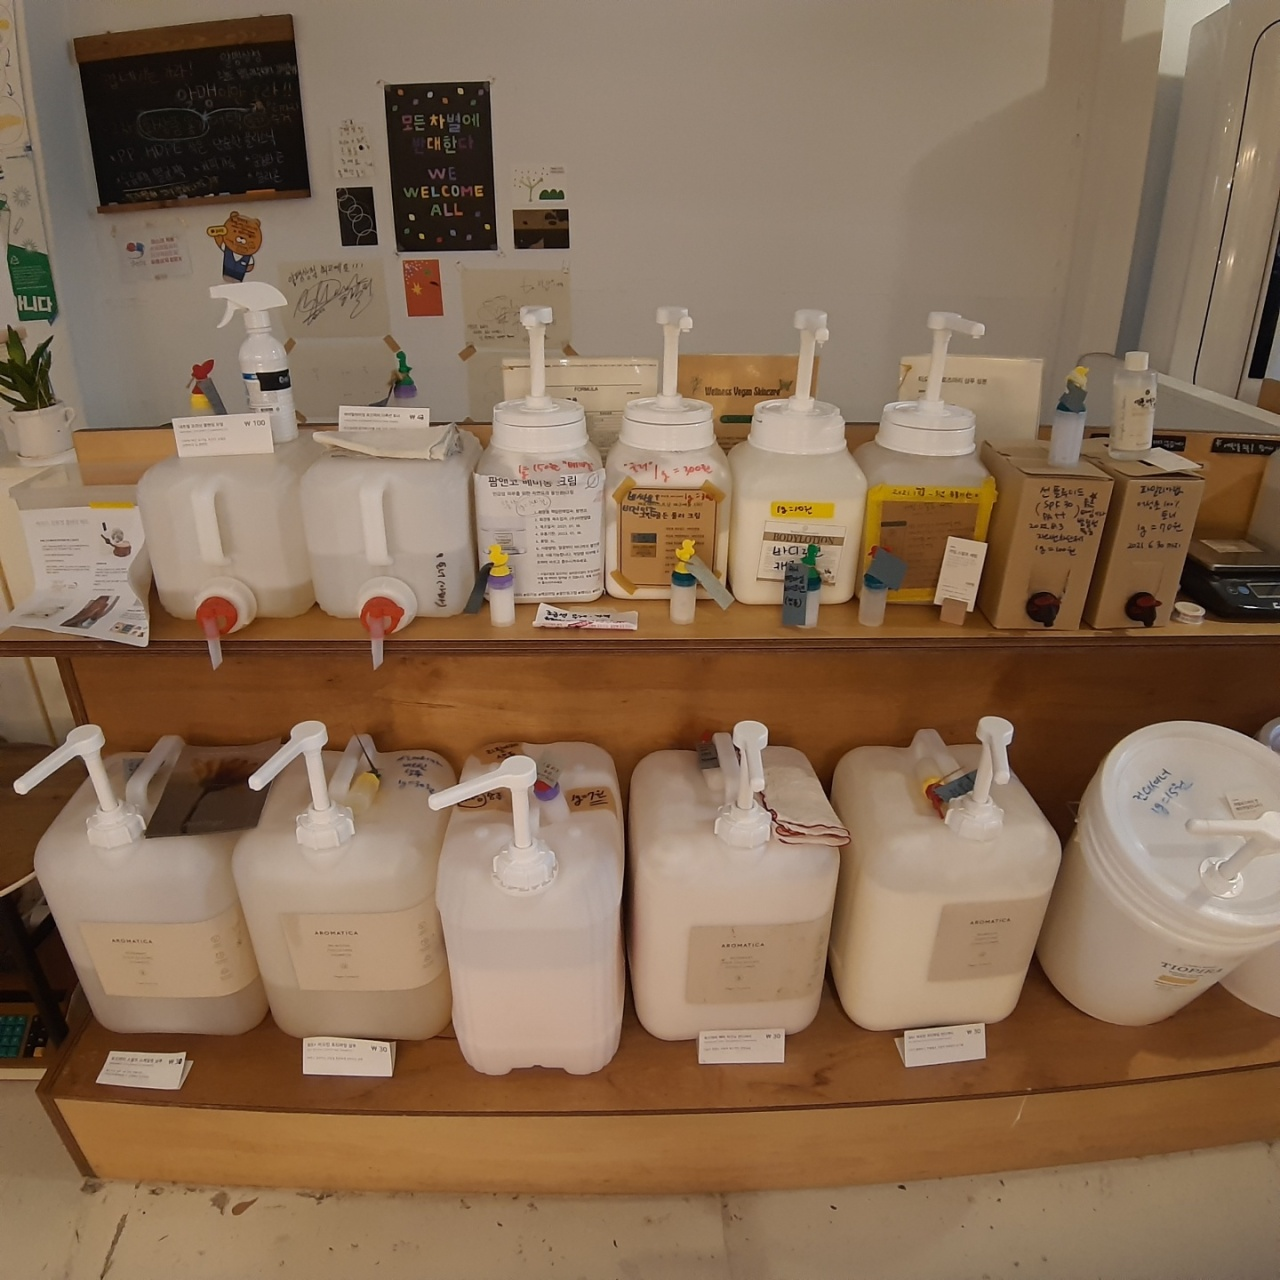 Refillable products, such as shampoo, body wash and body lotion, are displayed at Almang Market. (Shin Ji-hye/The Korea Herald)